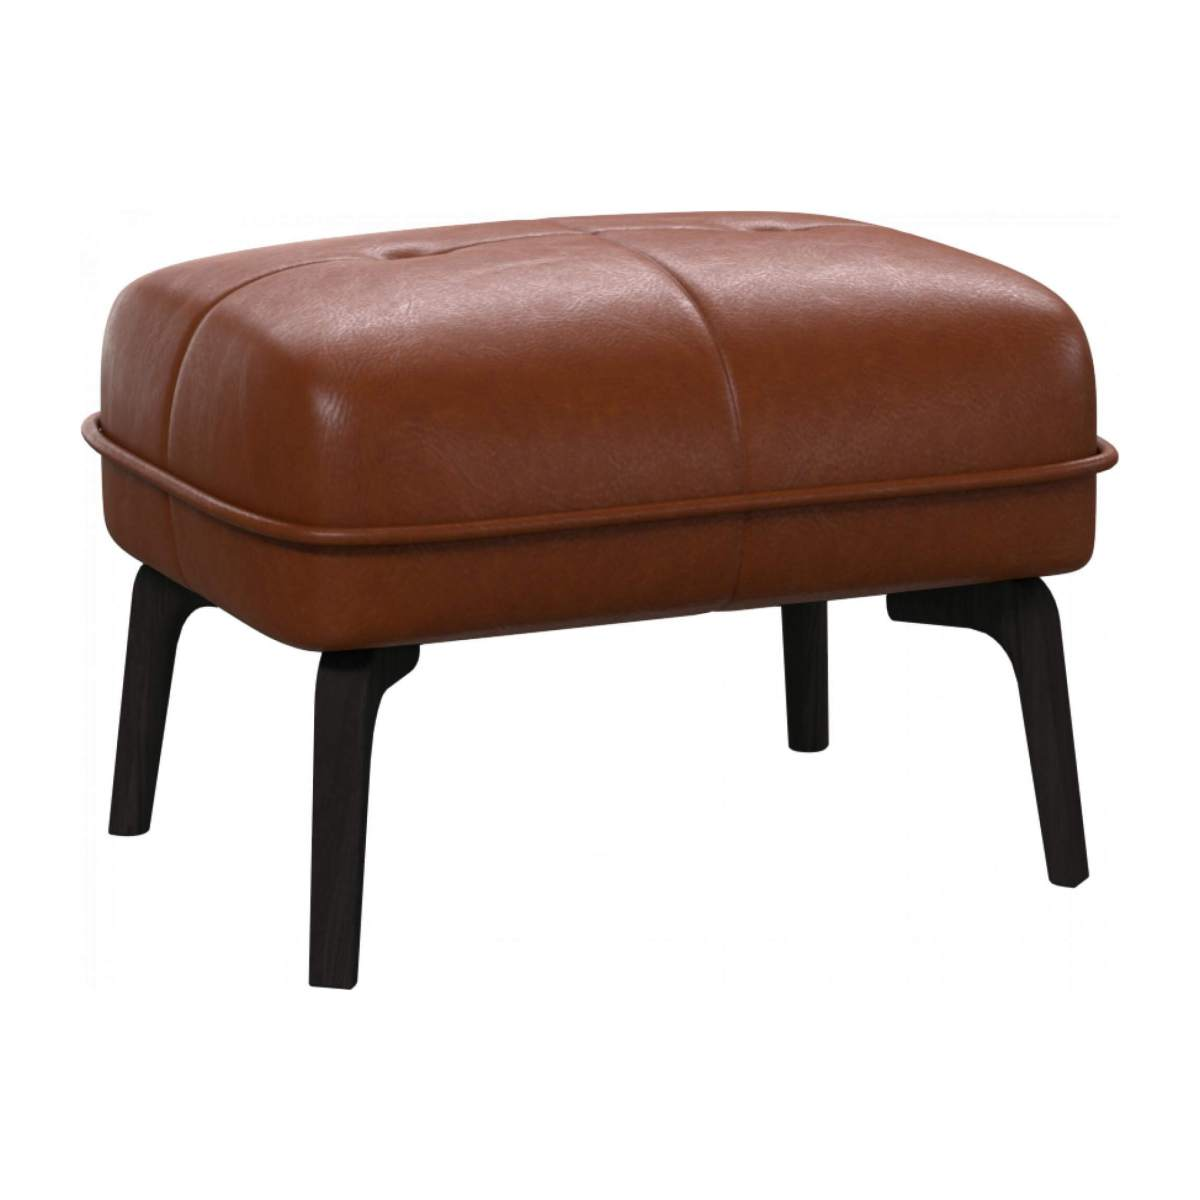 Footstool in Vintage aniline leather, old chestnut and dark feet n°2